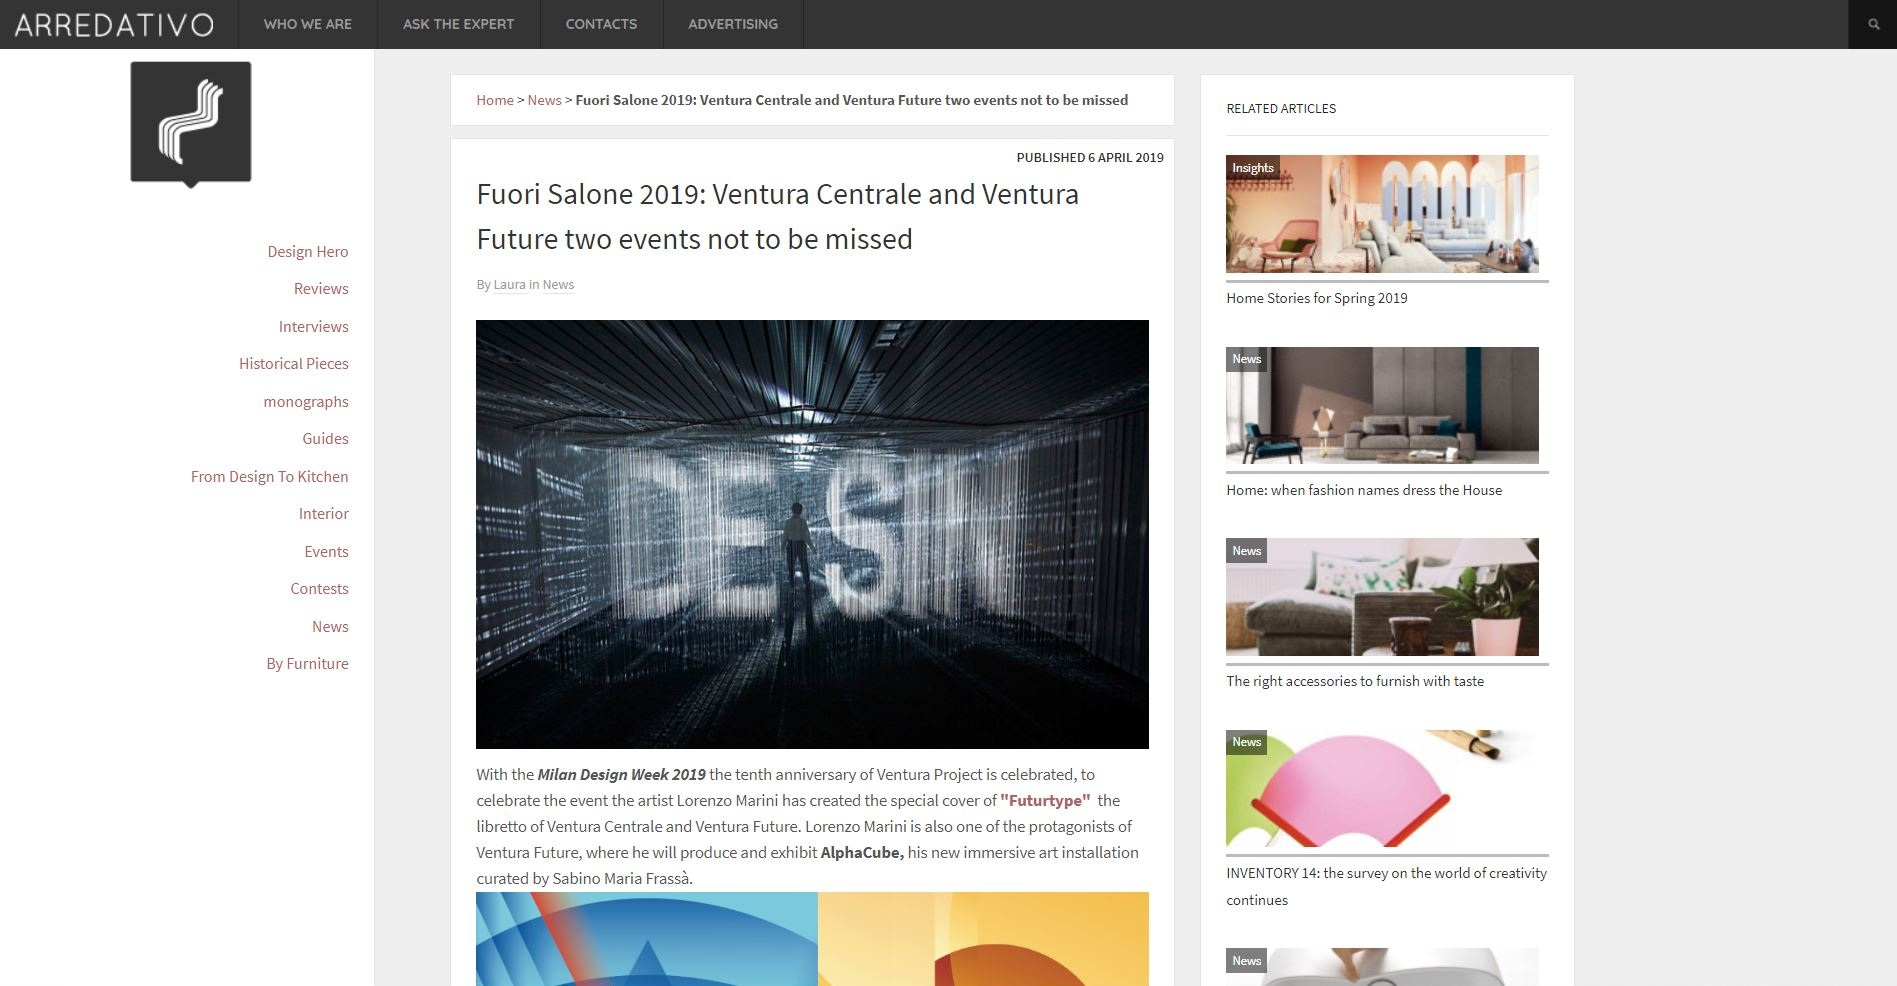 Fuori Salone 2019: Ventura Centrale and Ventura Future two events not to be missed - April 2019, arredativo.it